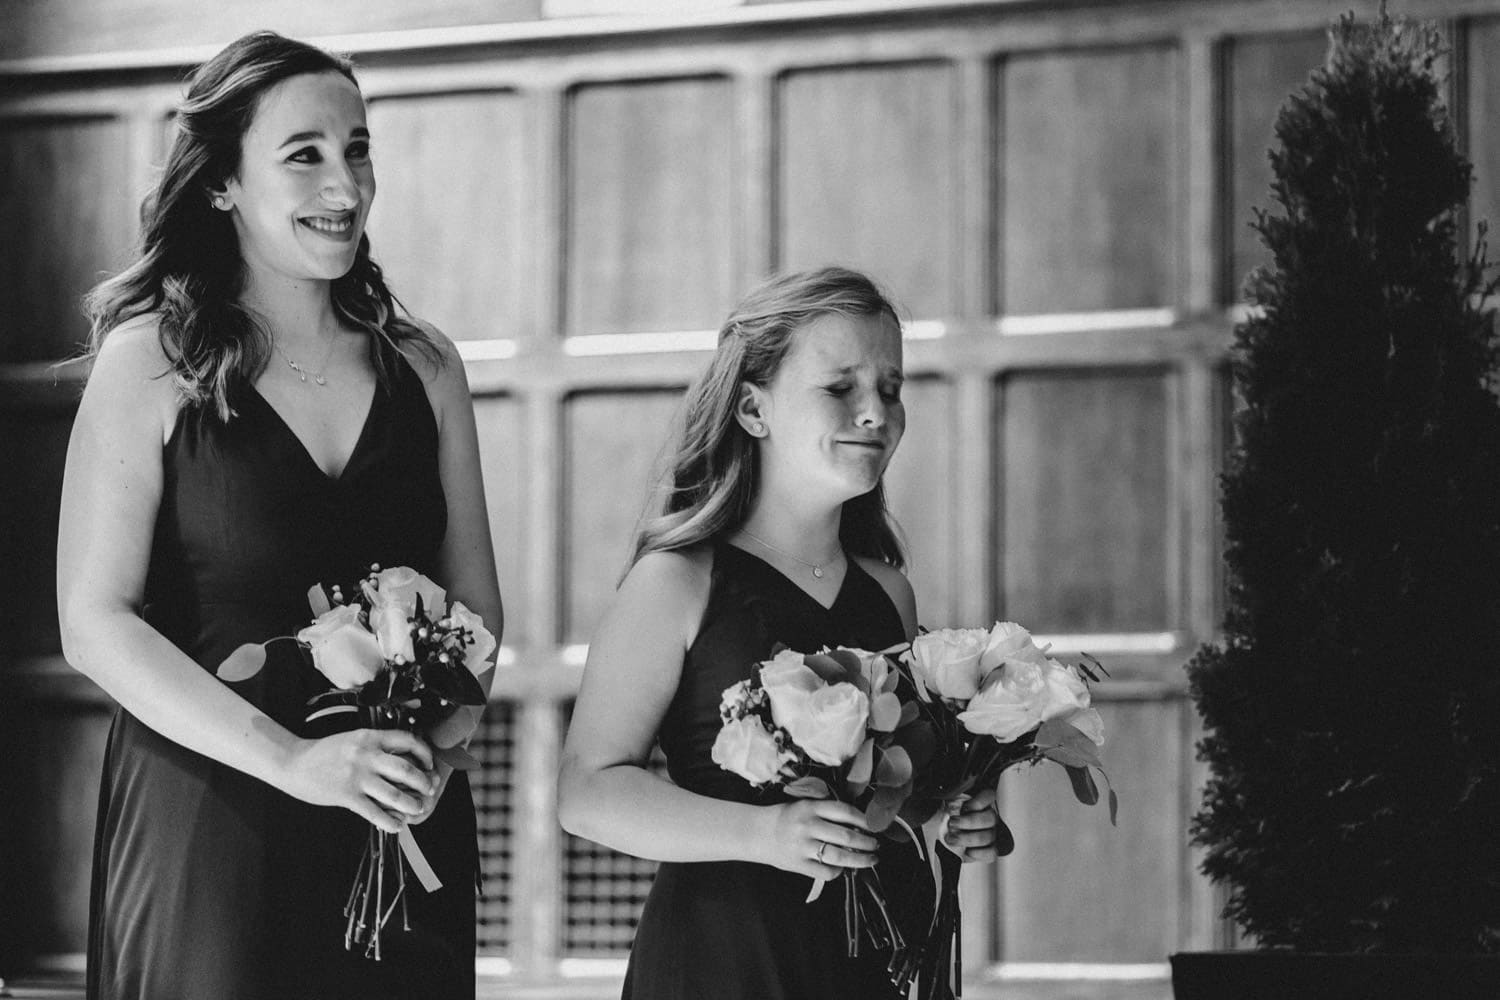 groom's daughter cries during ceremony - ottawa wedding photographer - carley teresa photography